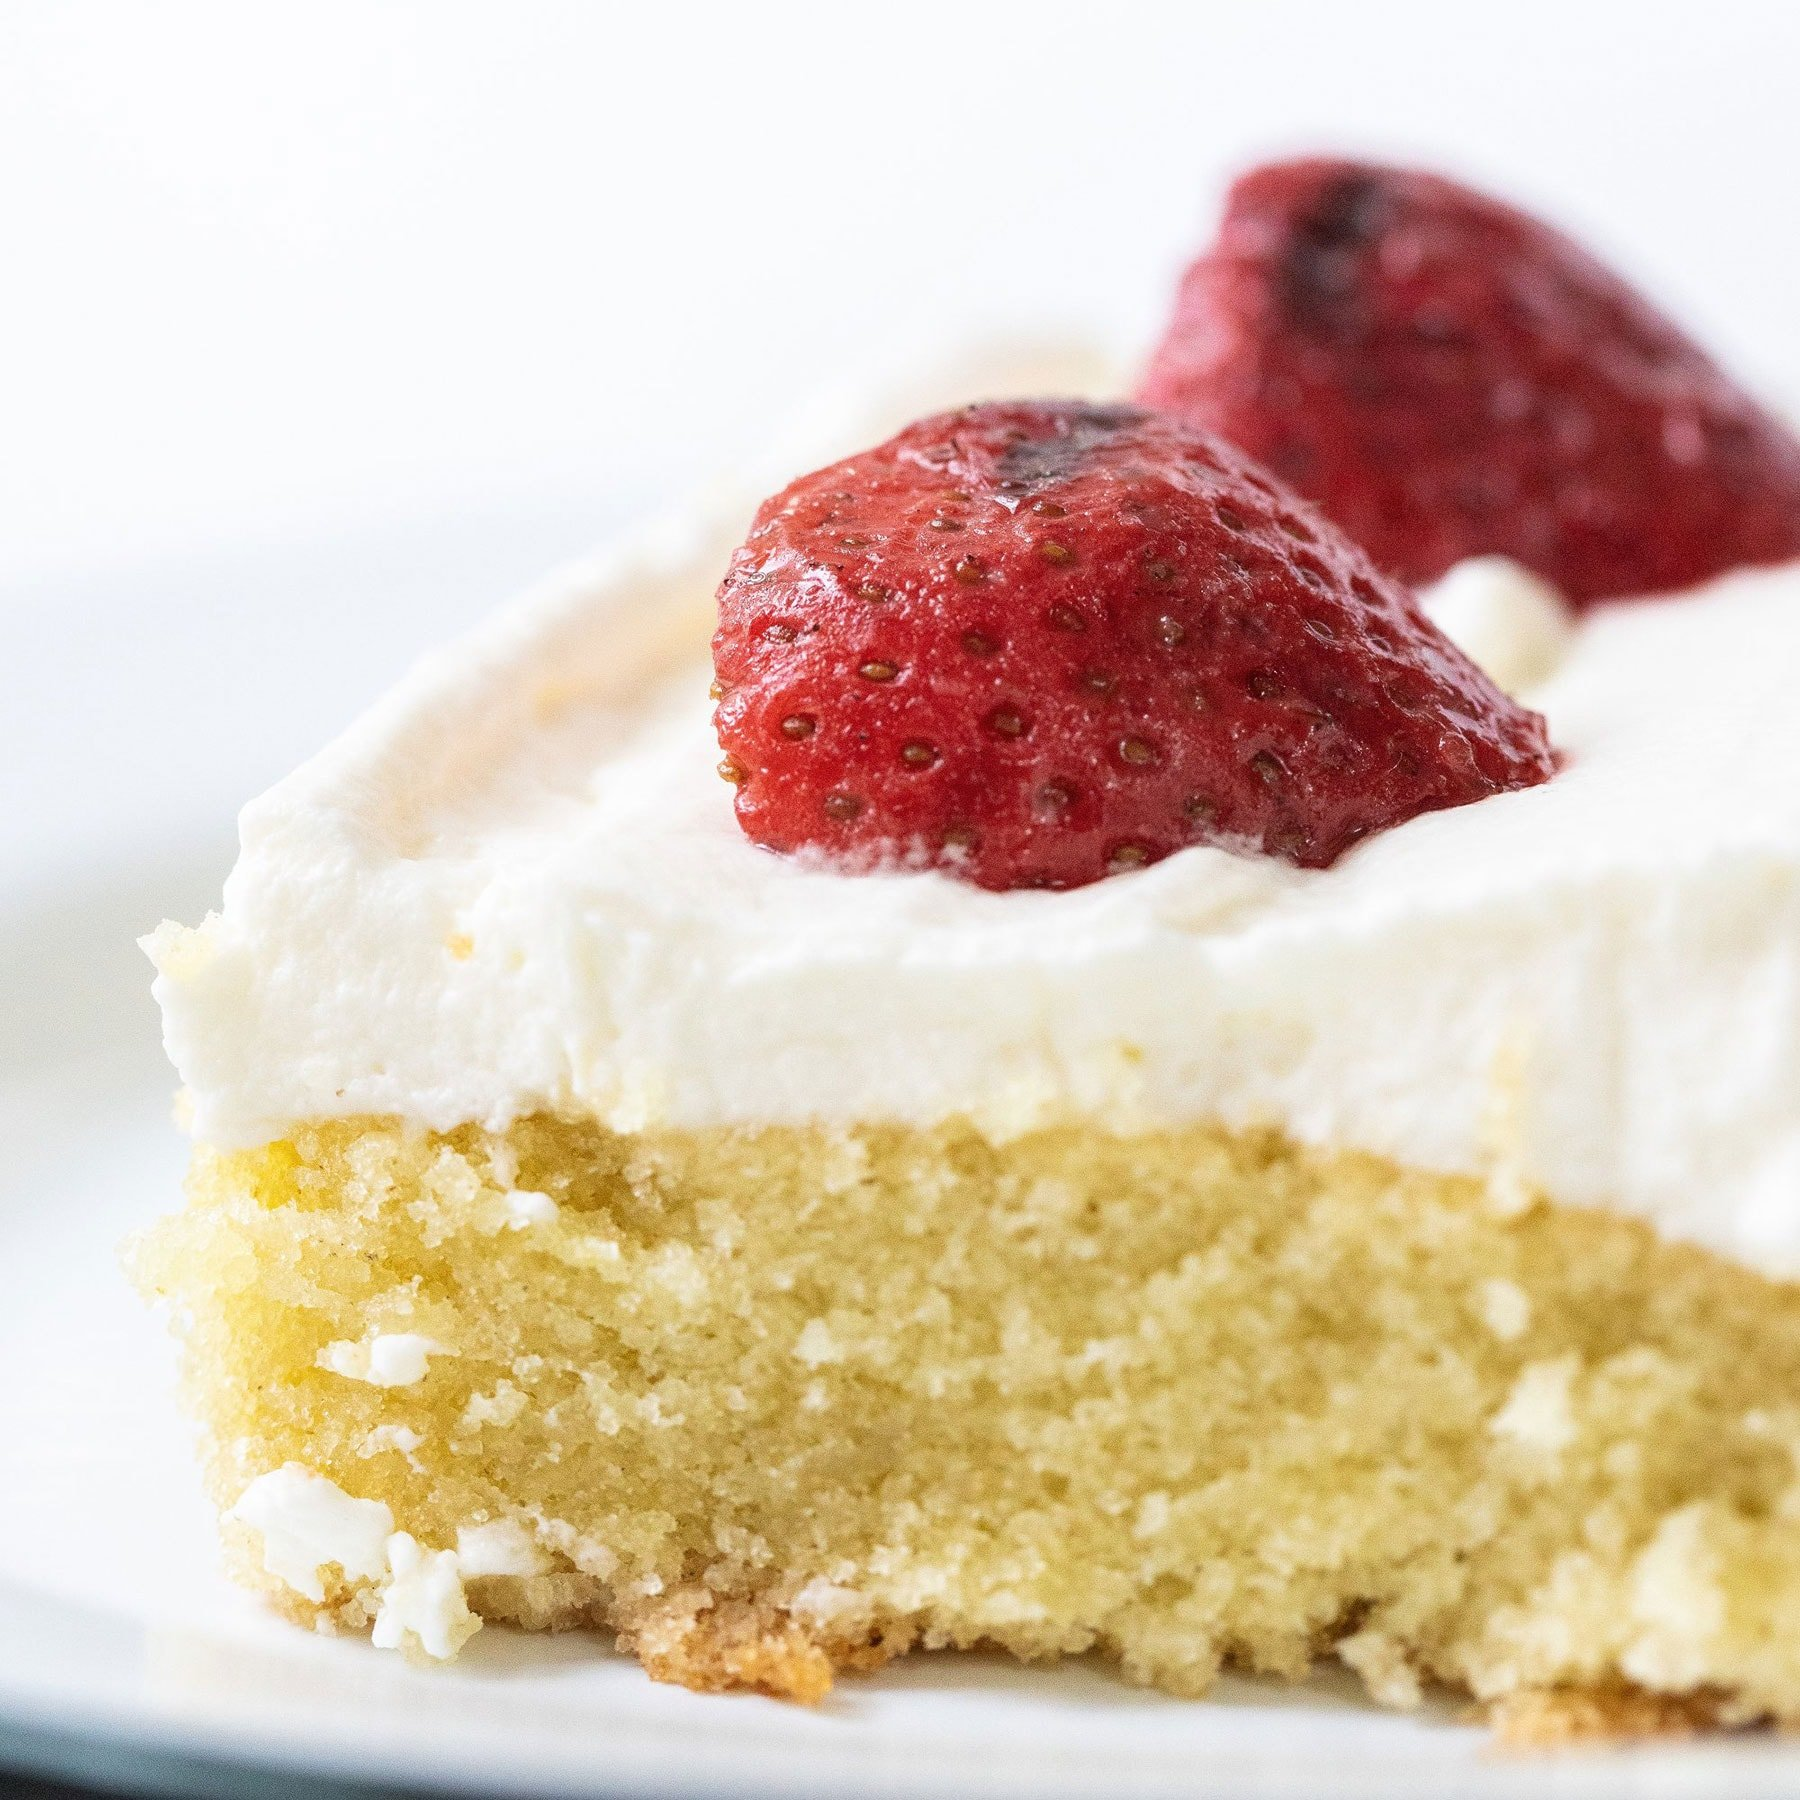 Vanilla Sheet Cake with Grilled Strawberries features an ultra moist, tender, and slightly spongy vanilla cake with fresh whipped cream and slightly smoky grilled strawberries on top. Perfect summer dessert for a crowd!